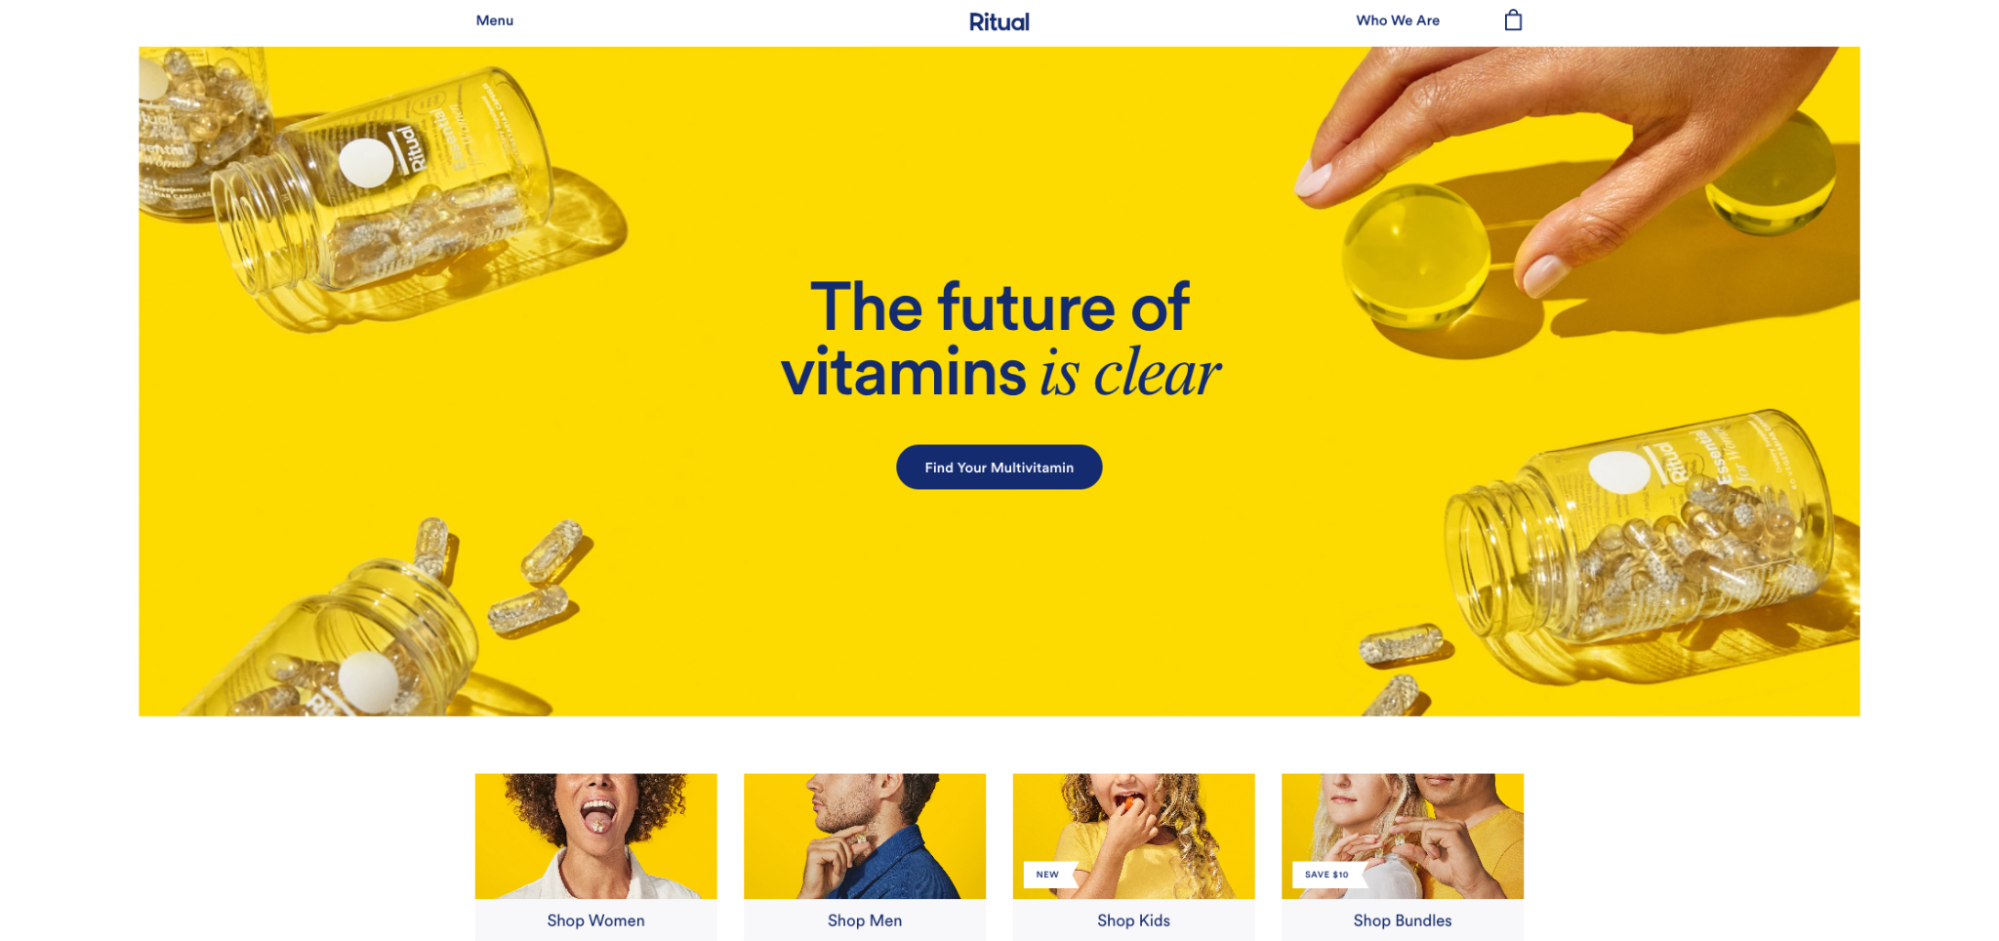 The homepage for vitamin brand Ritual designed by Simplistic